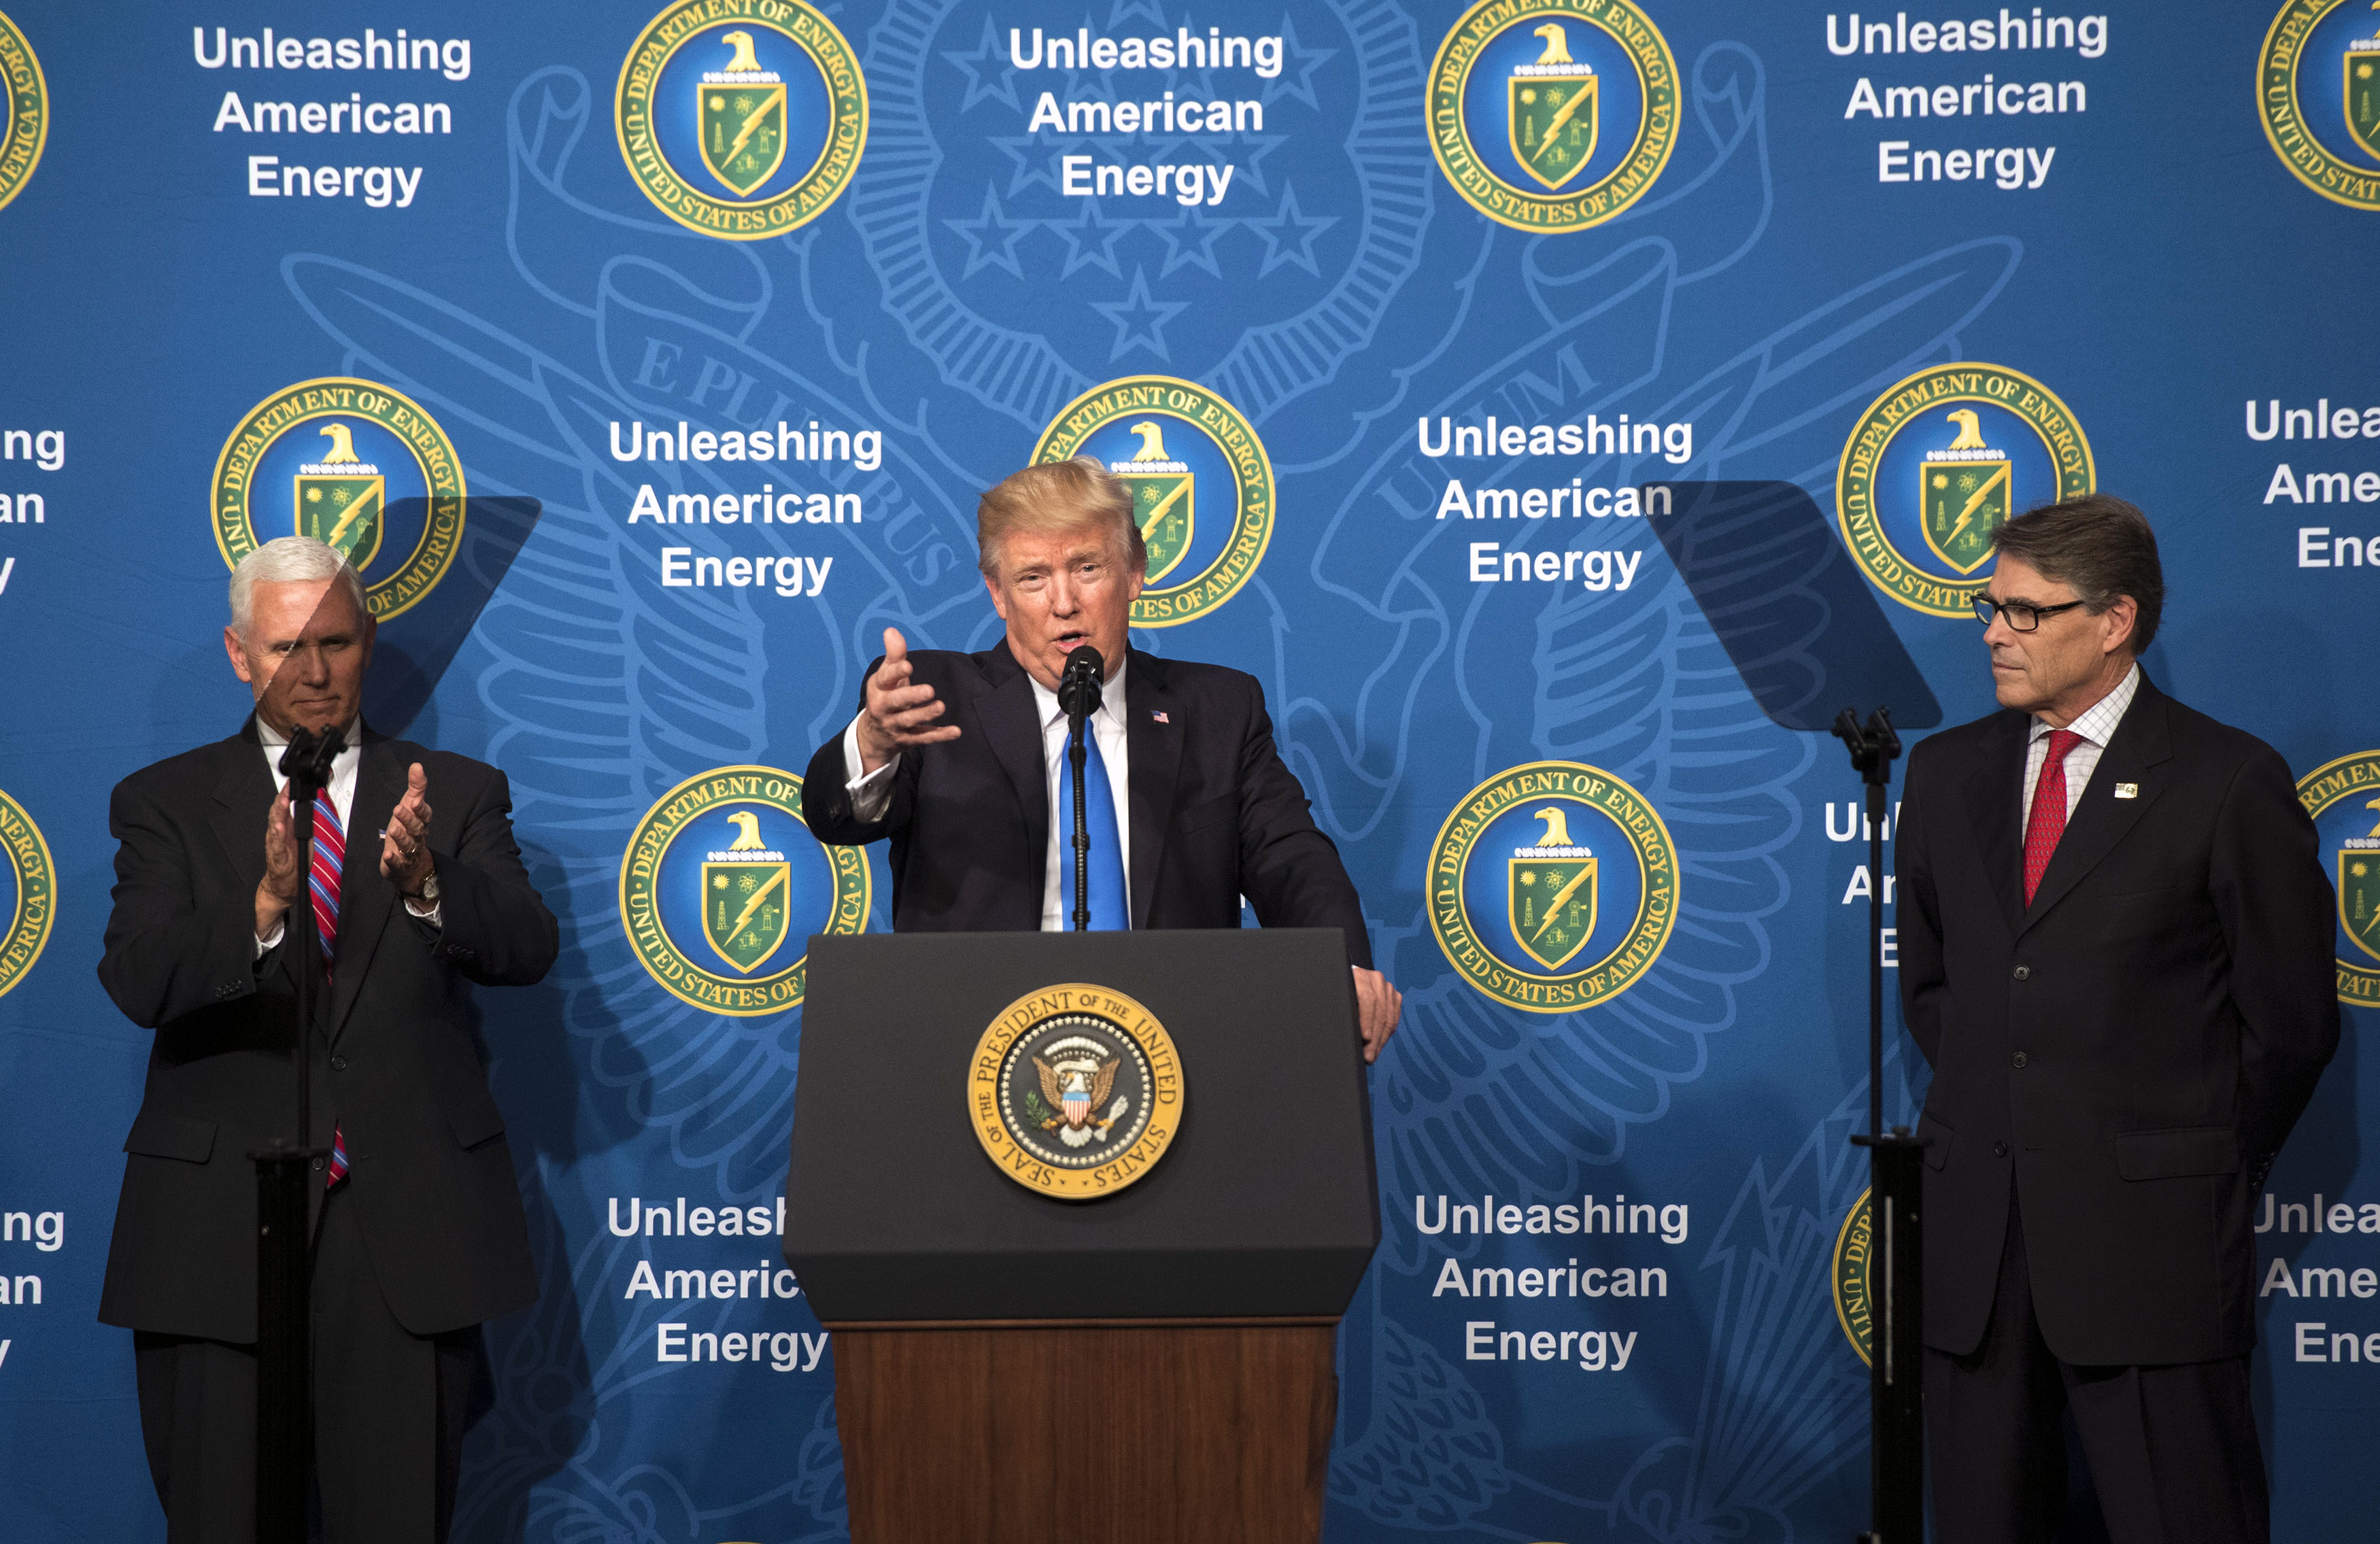 U.S. President Donald Trump, joined by Vice President Mike Pence and Energy Secretary Rick Perry, delivers remarks at the Unleashing American Energy event at the Department of Energy on June 29, 2017 in Washington, DC.